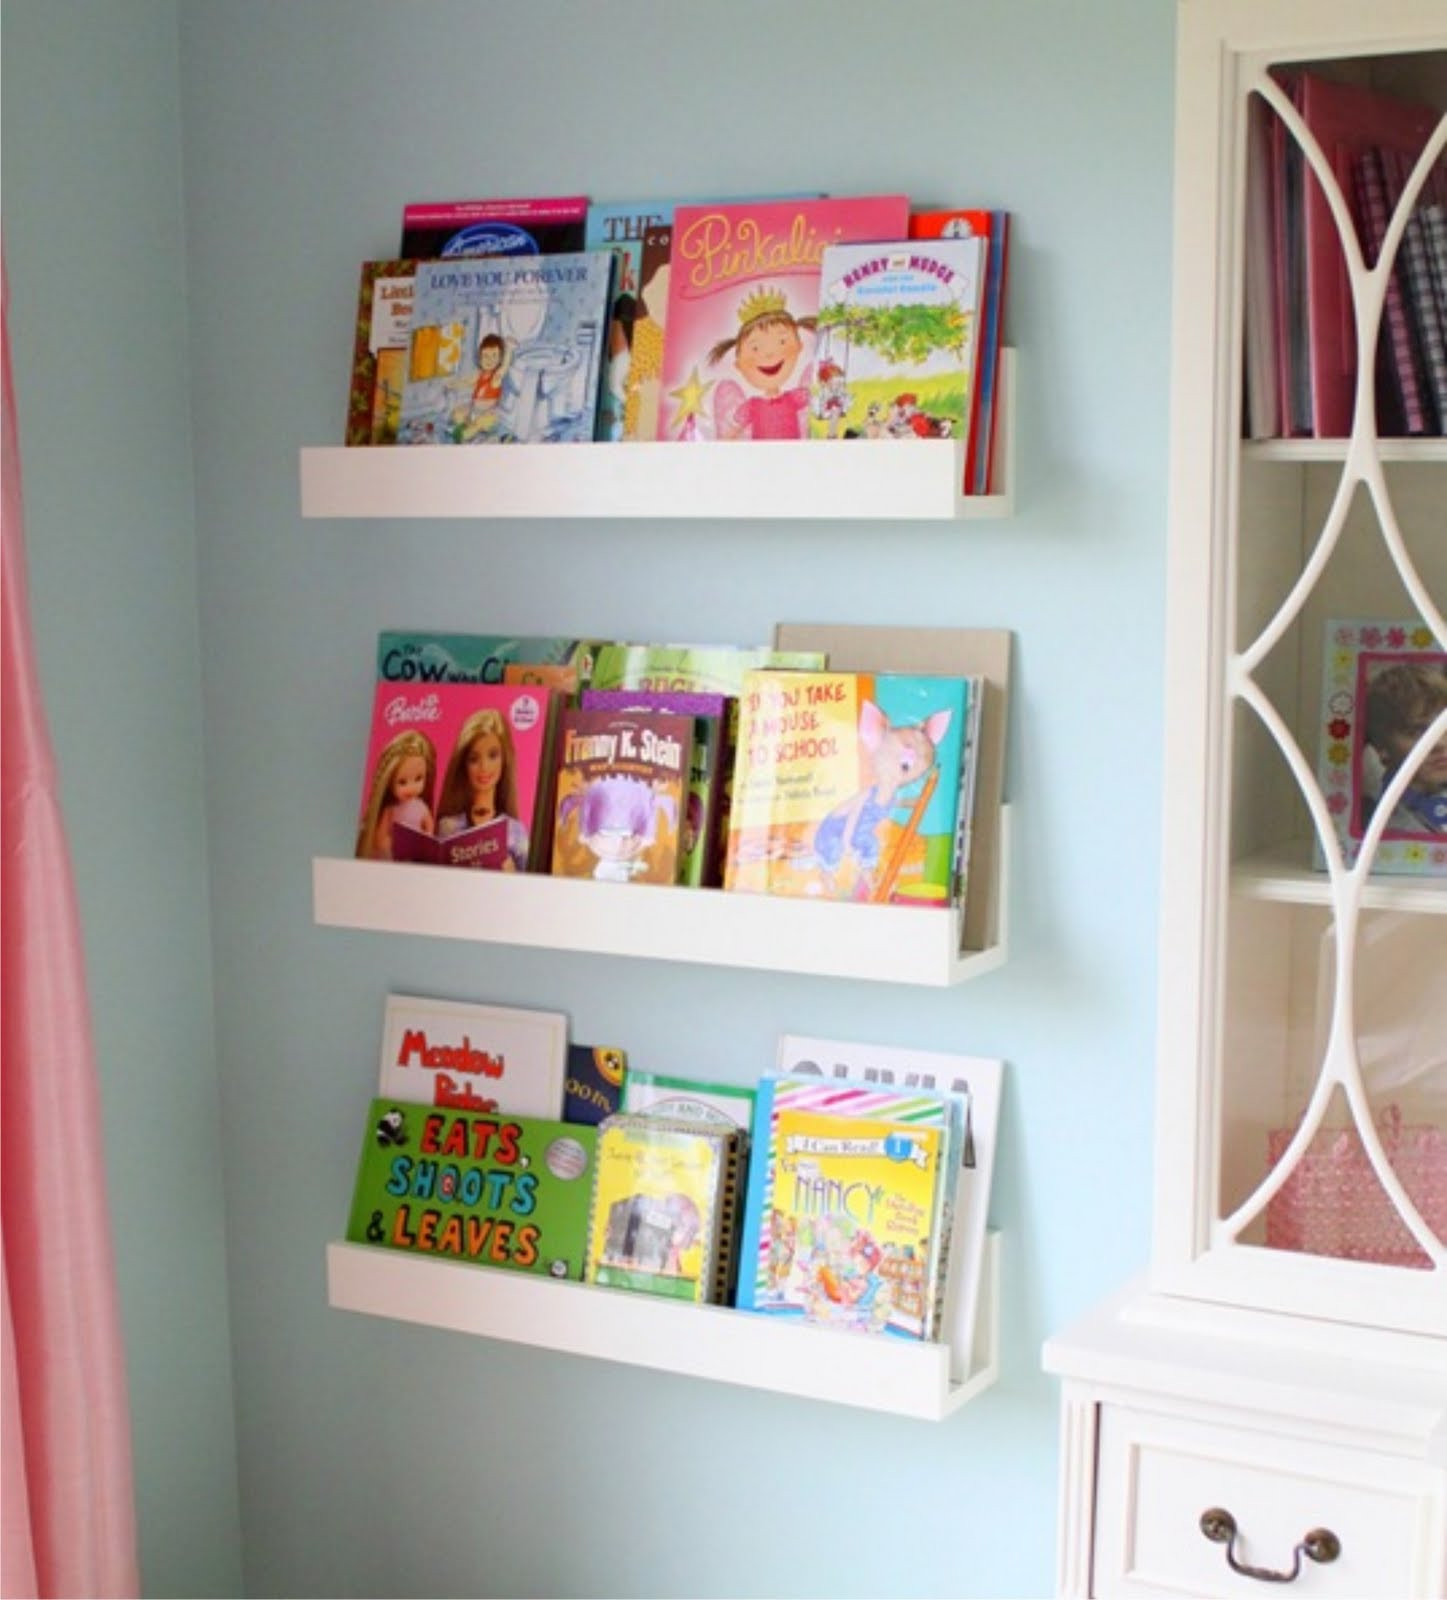 Best ideas about DIY Wall Bookshelf . Save or Pin Winks & Daisies DIY Wall Shelves Now.